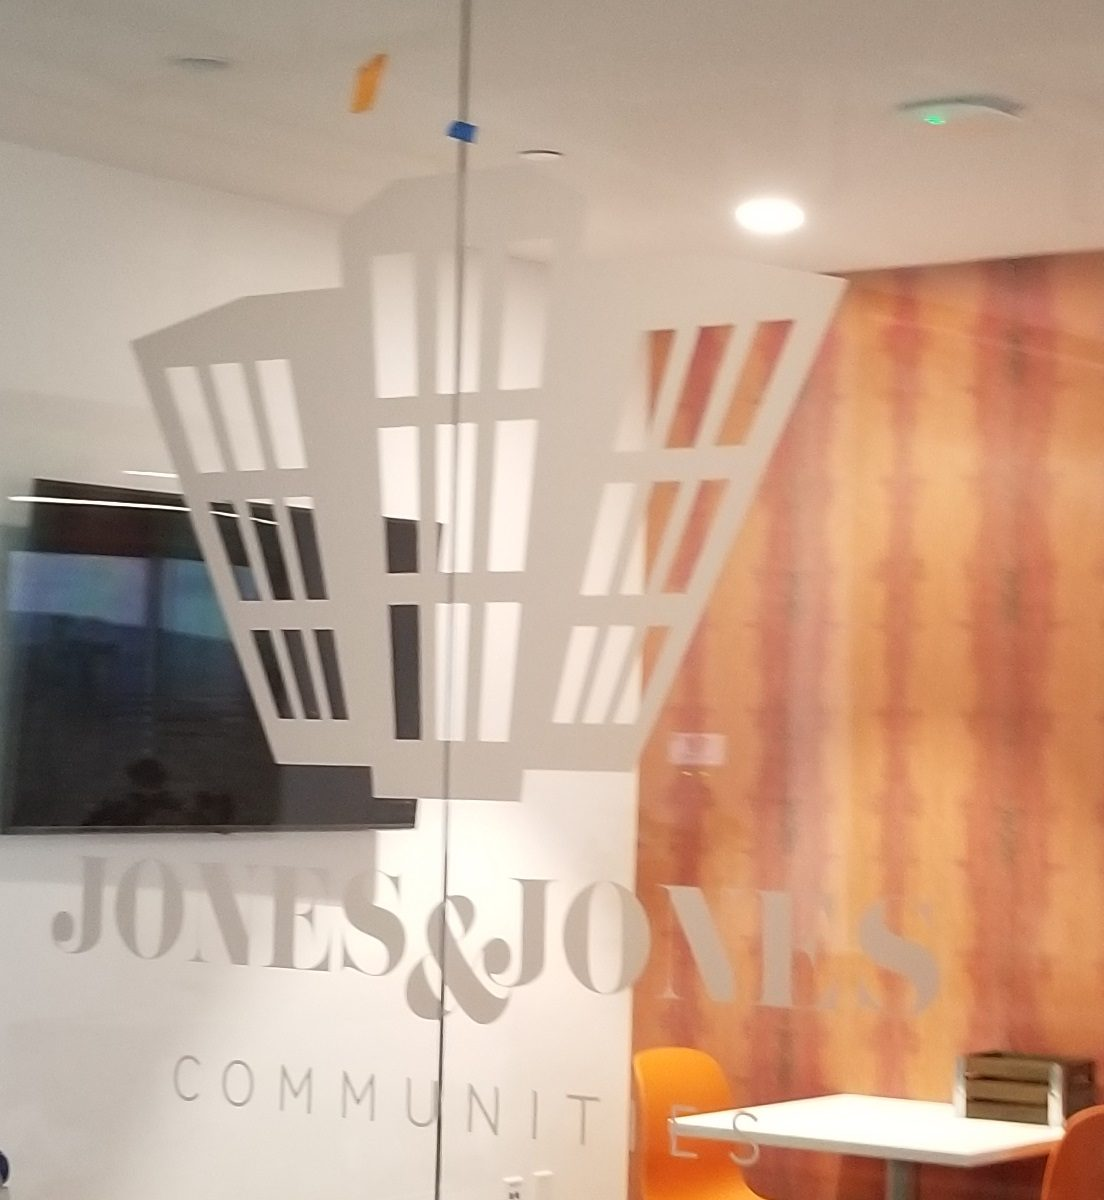 In the Jones and Jones office reception area, we added etched glass window graphics.